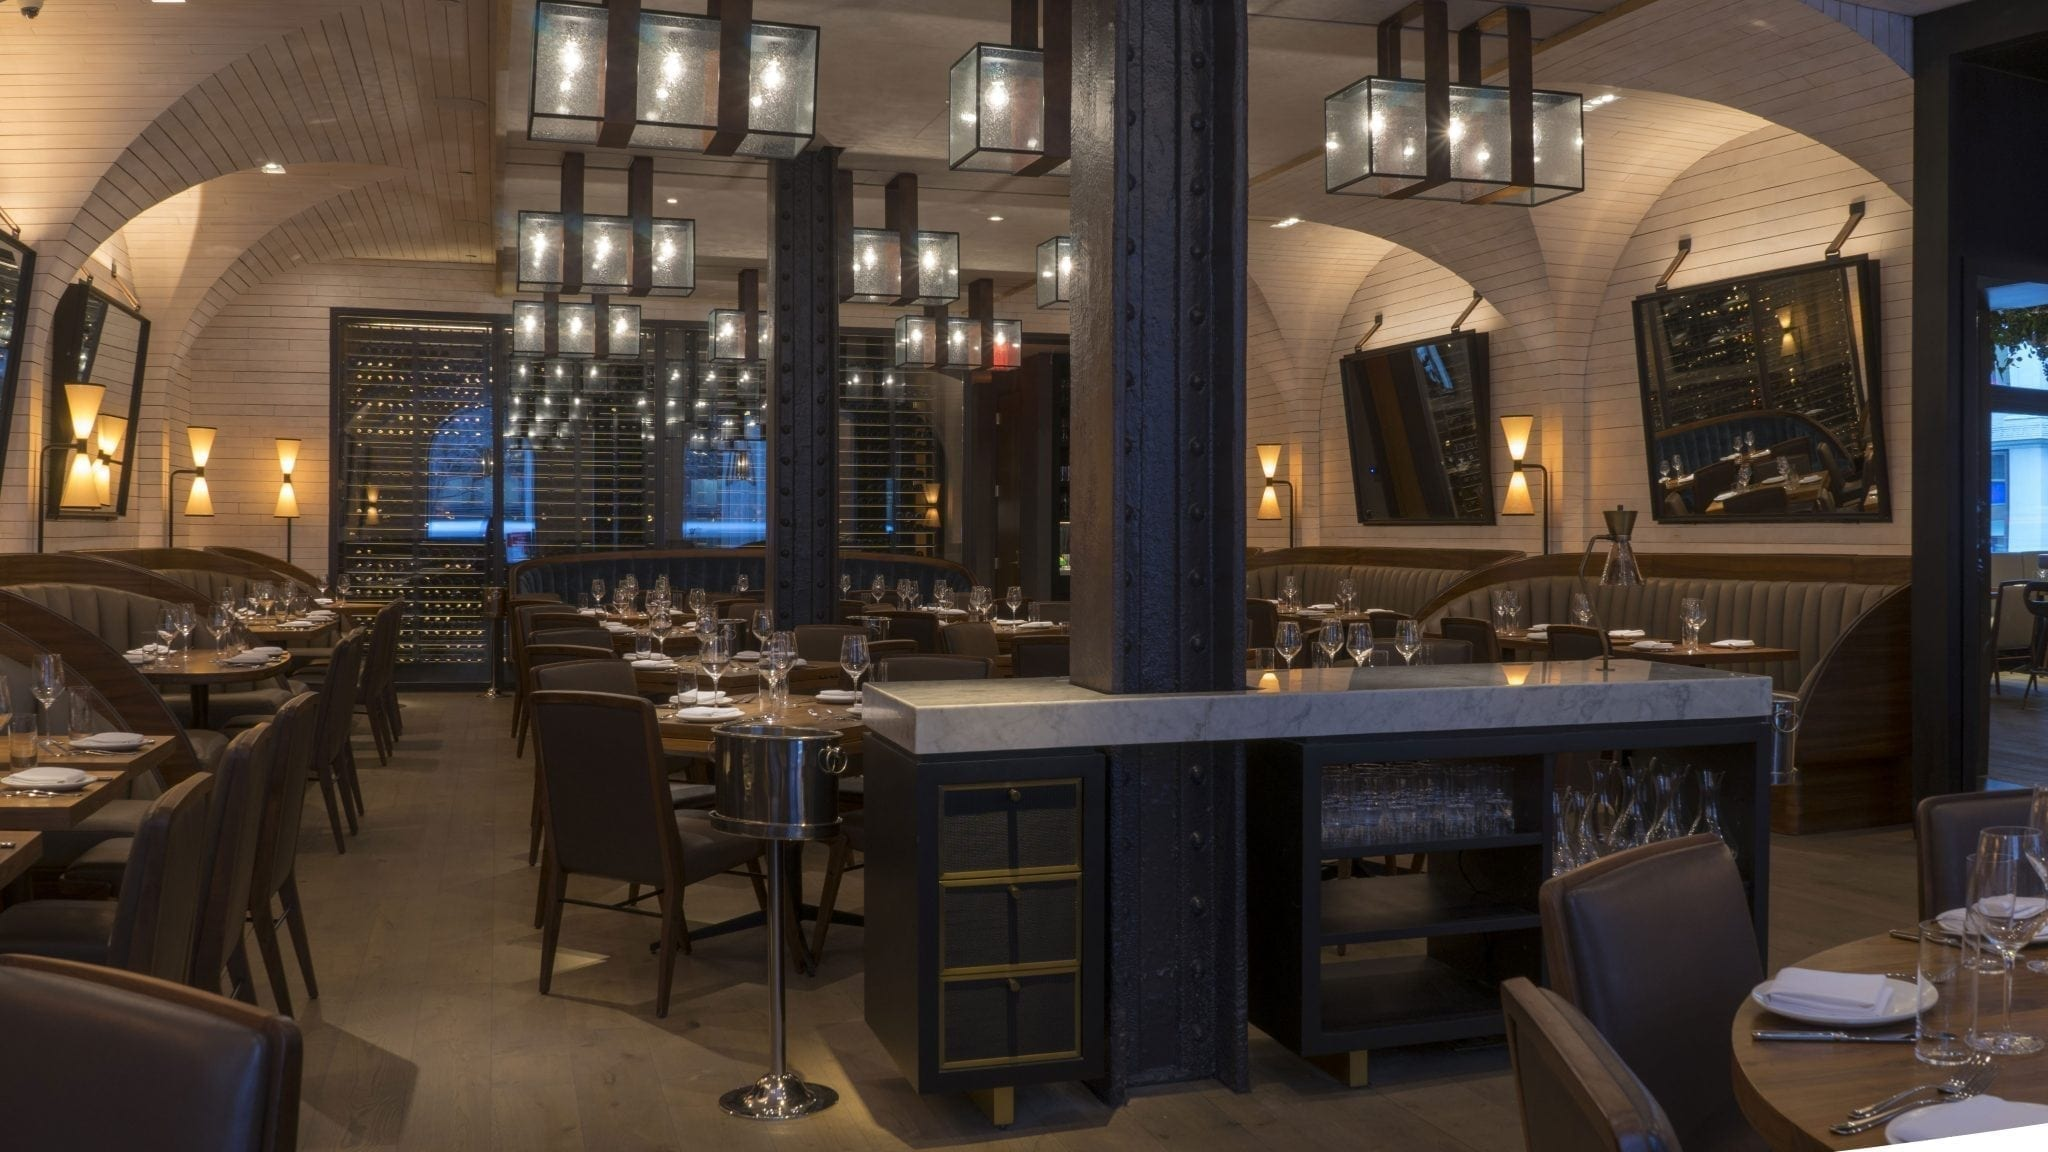 Prepared dining area inside Scarpetta. Lighting has been dimmed and set to give a warm glow.